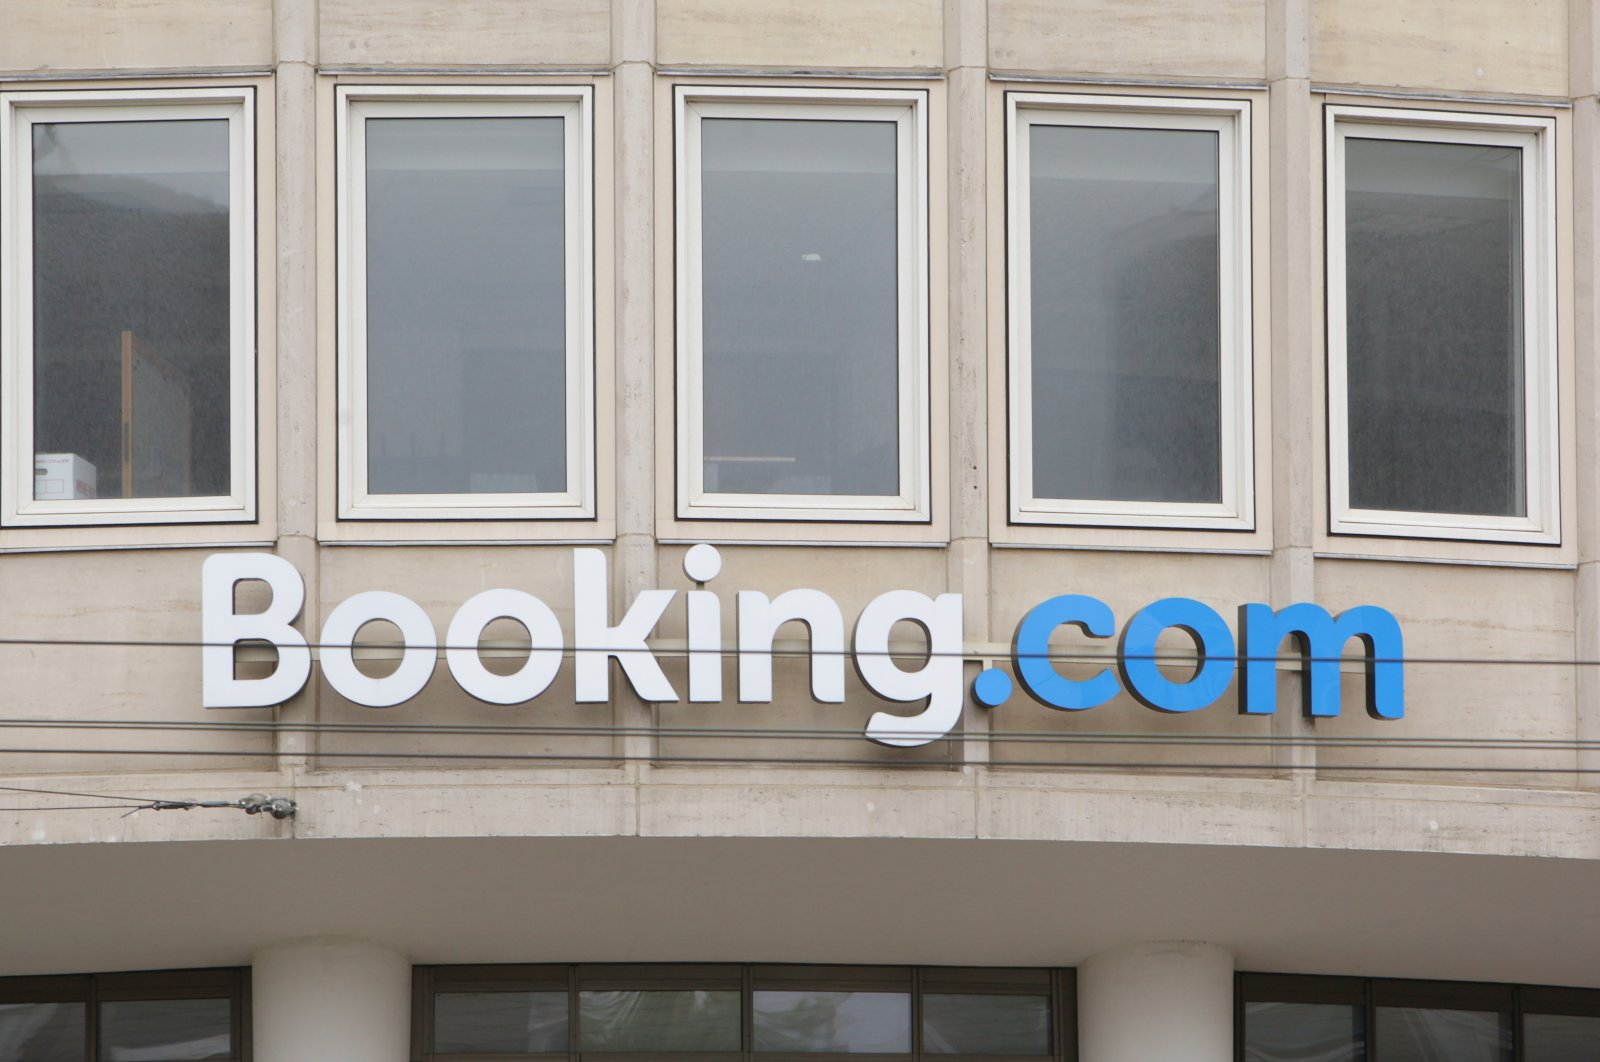 Booking.com headquarters seen in Amsterdam, the Netherlands, Sept. 8, 2020. (Reuters Photo)